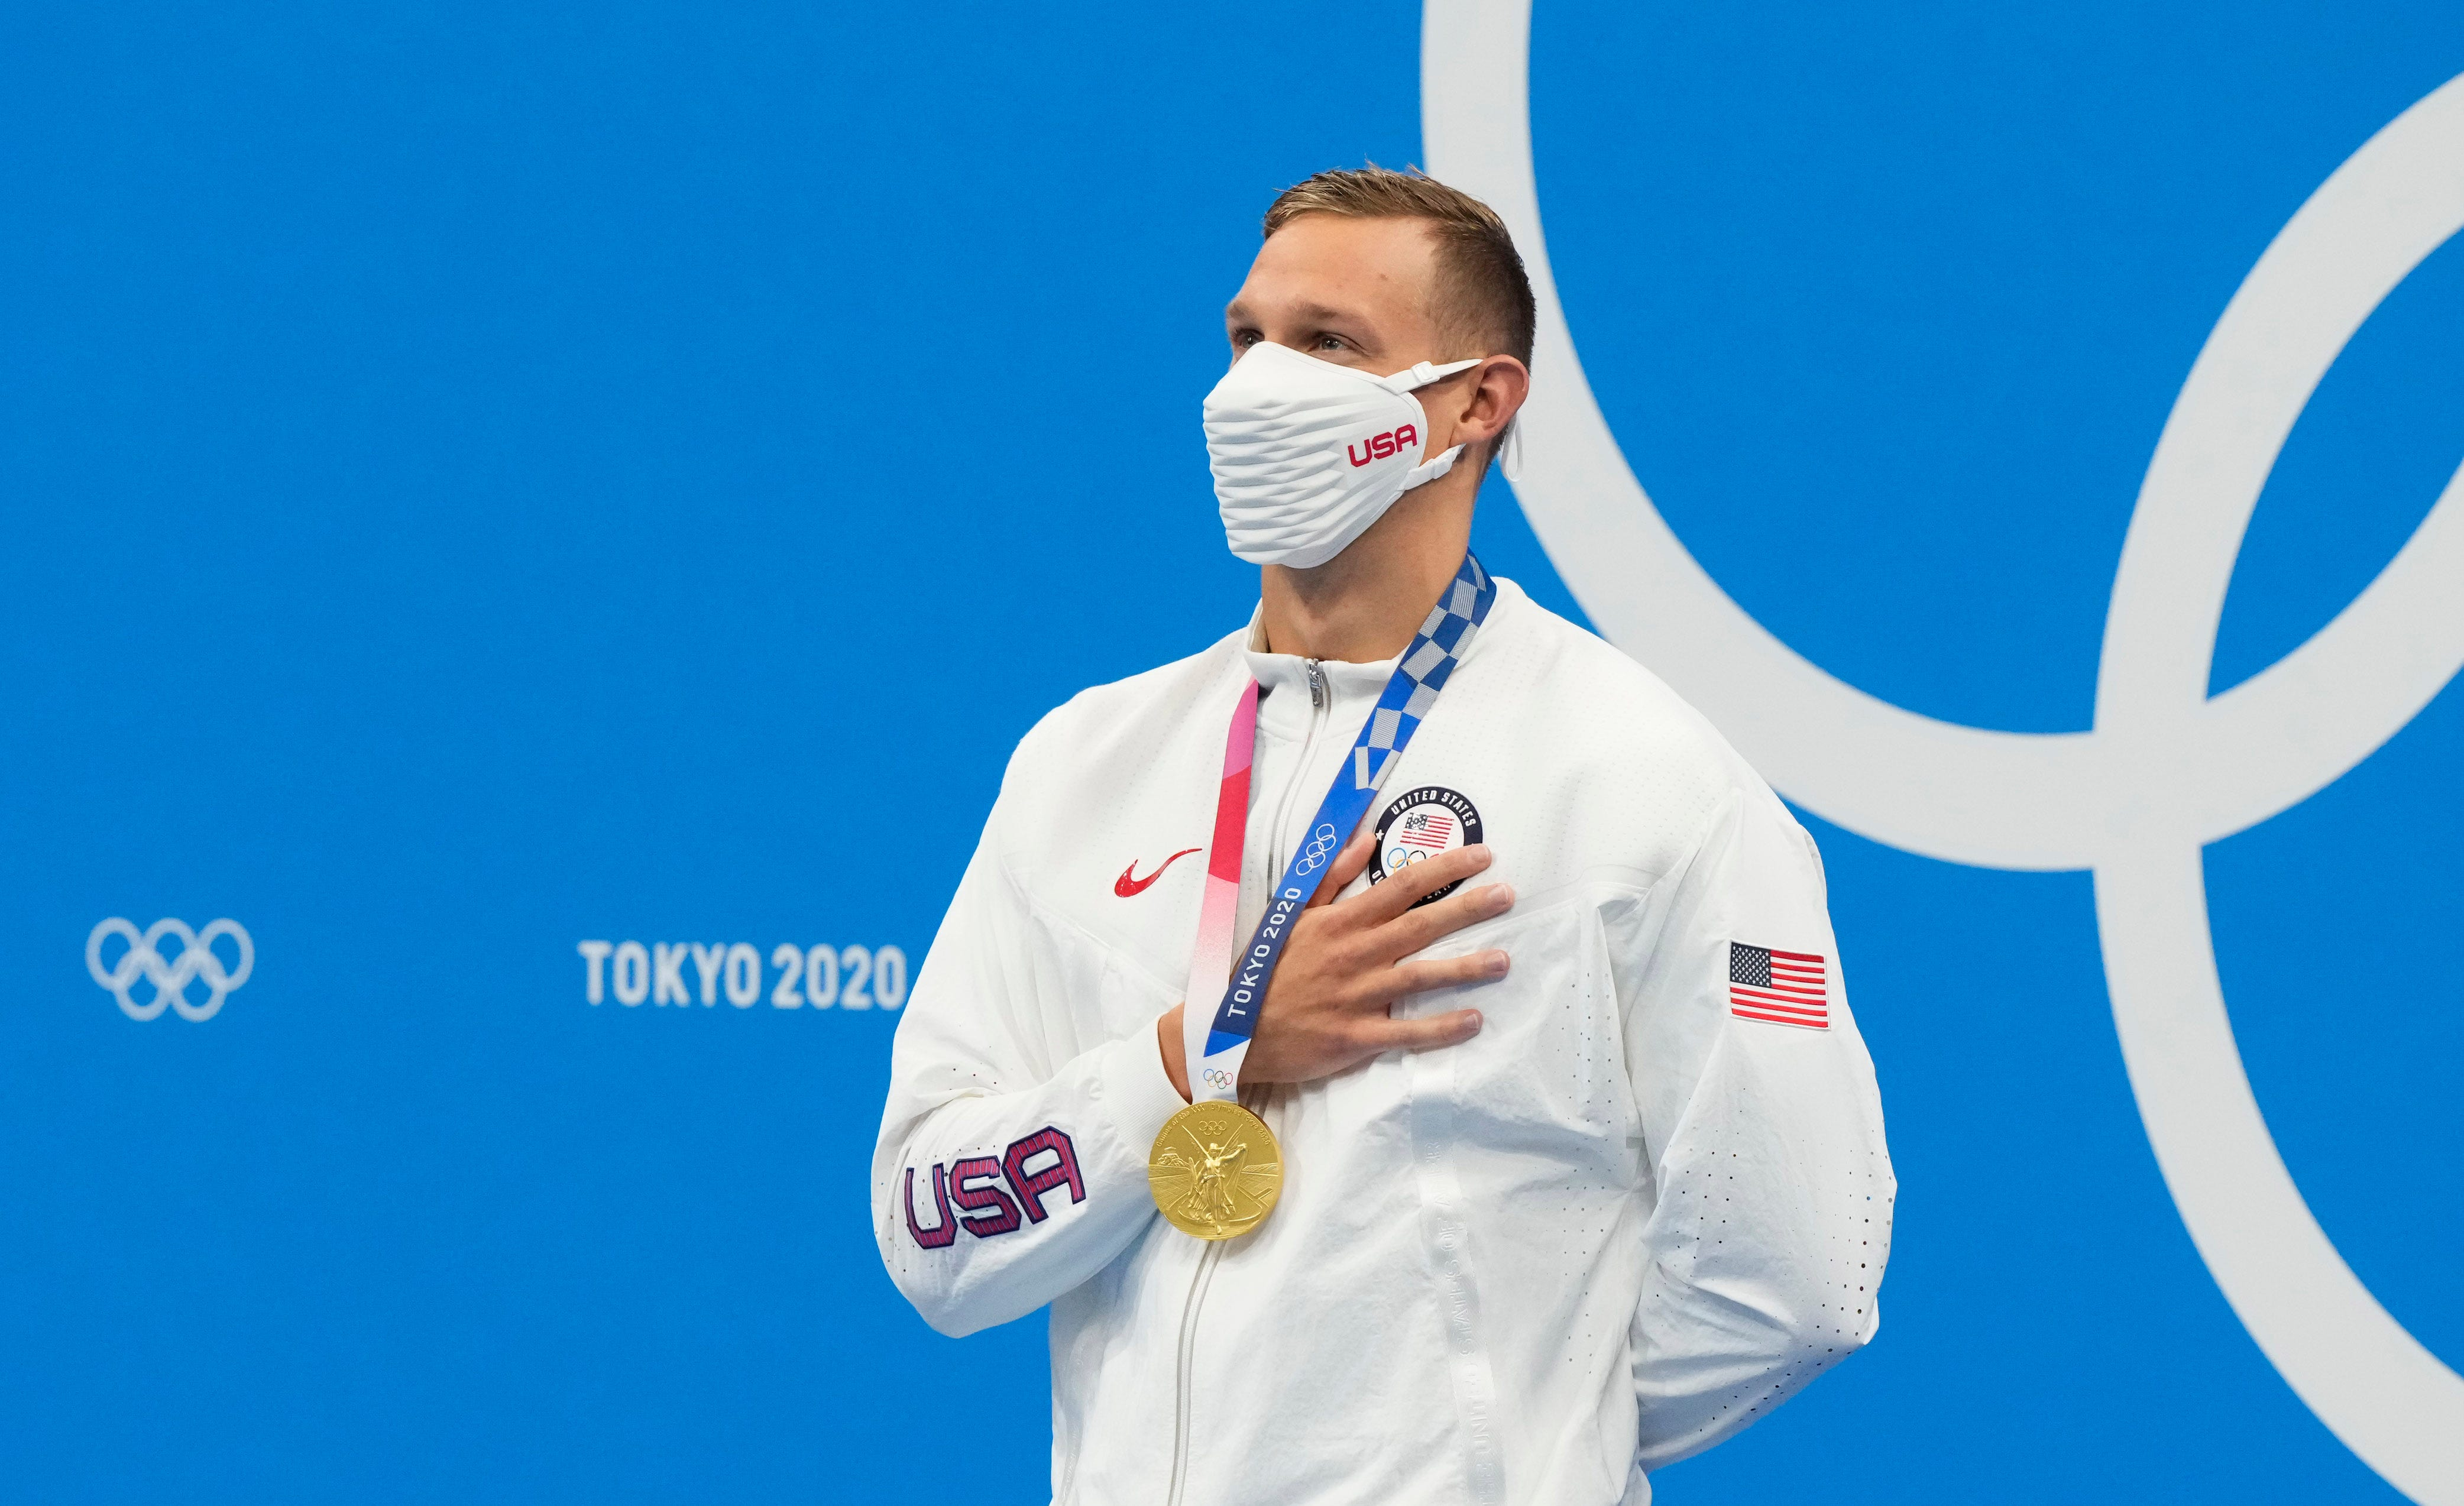 Tokyo Olympics live updates: Caeleb Dressel wins his fourth and fifth gold medals, Simone Biles out of floor exercise